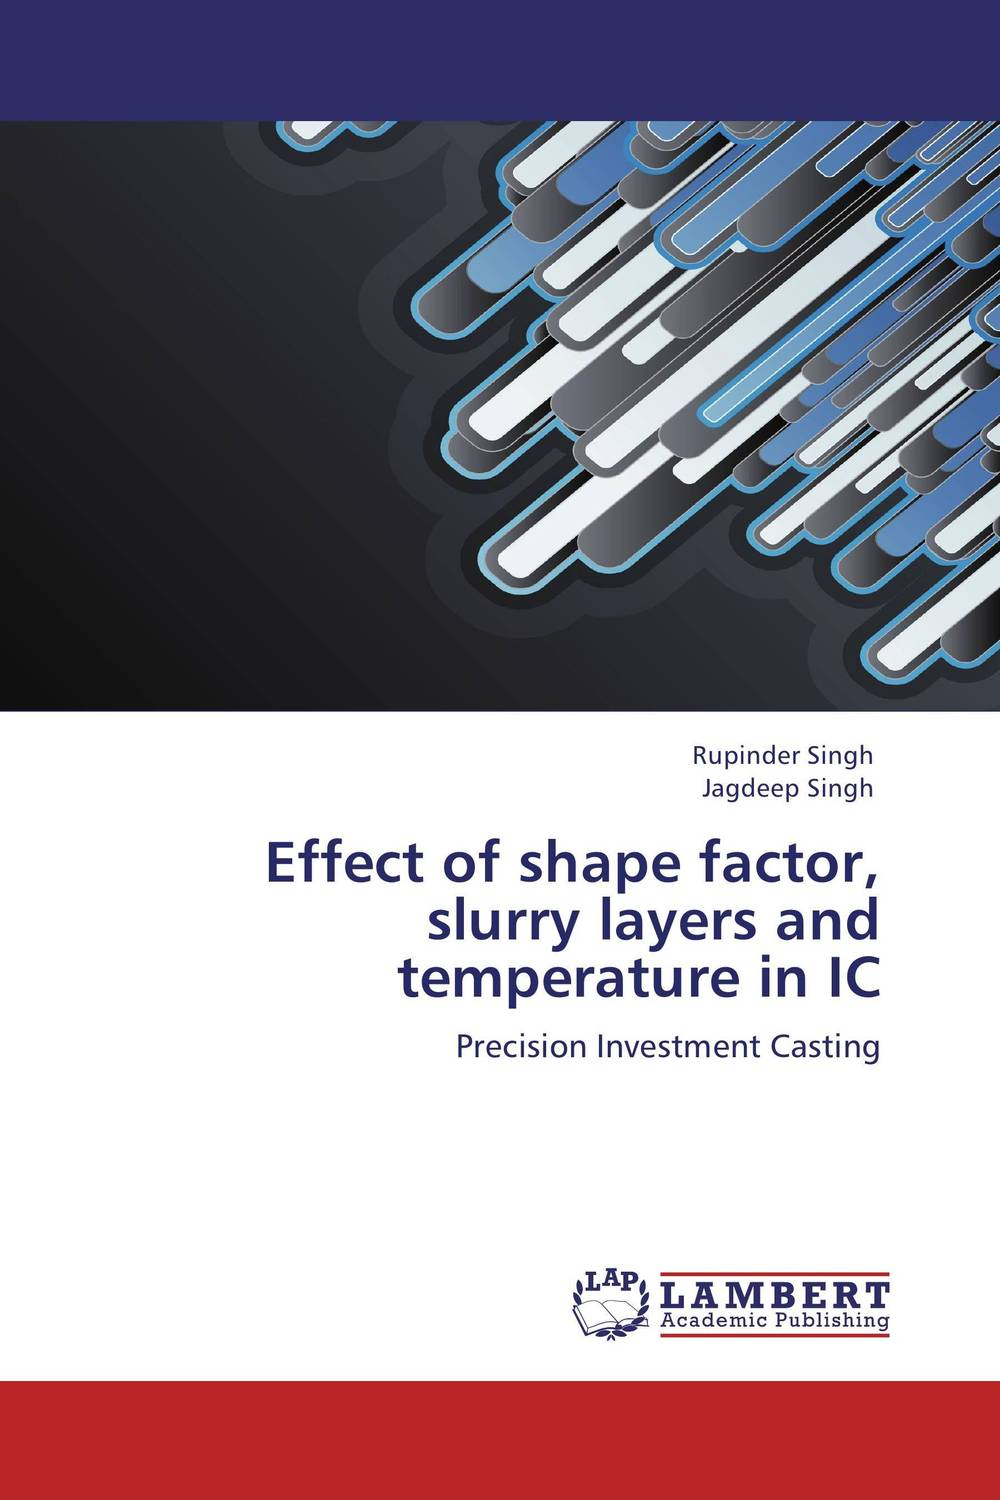 Effect of shape factor, slurry layers and temperature in IC surfactants effect on hardness of dental stone and investment material